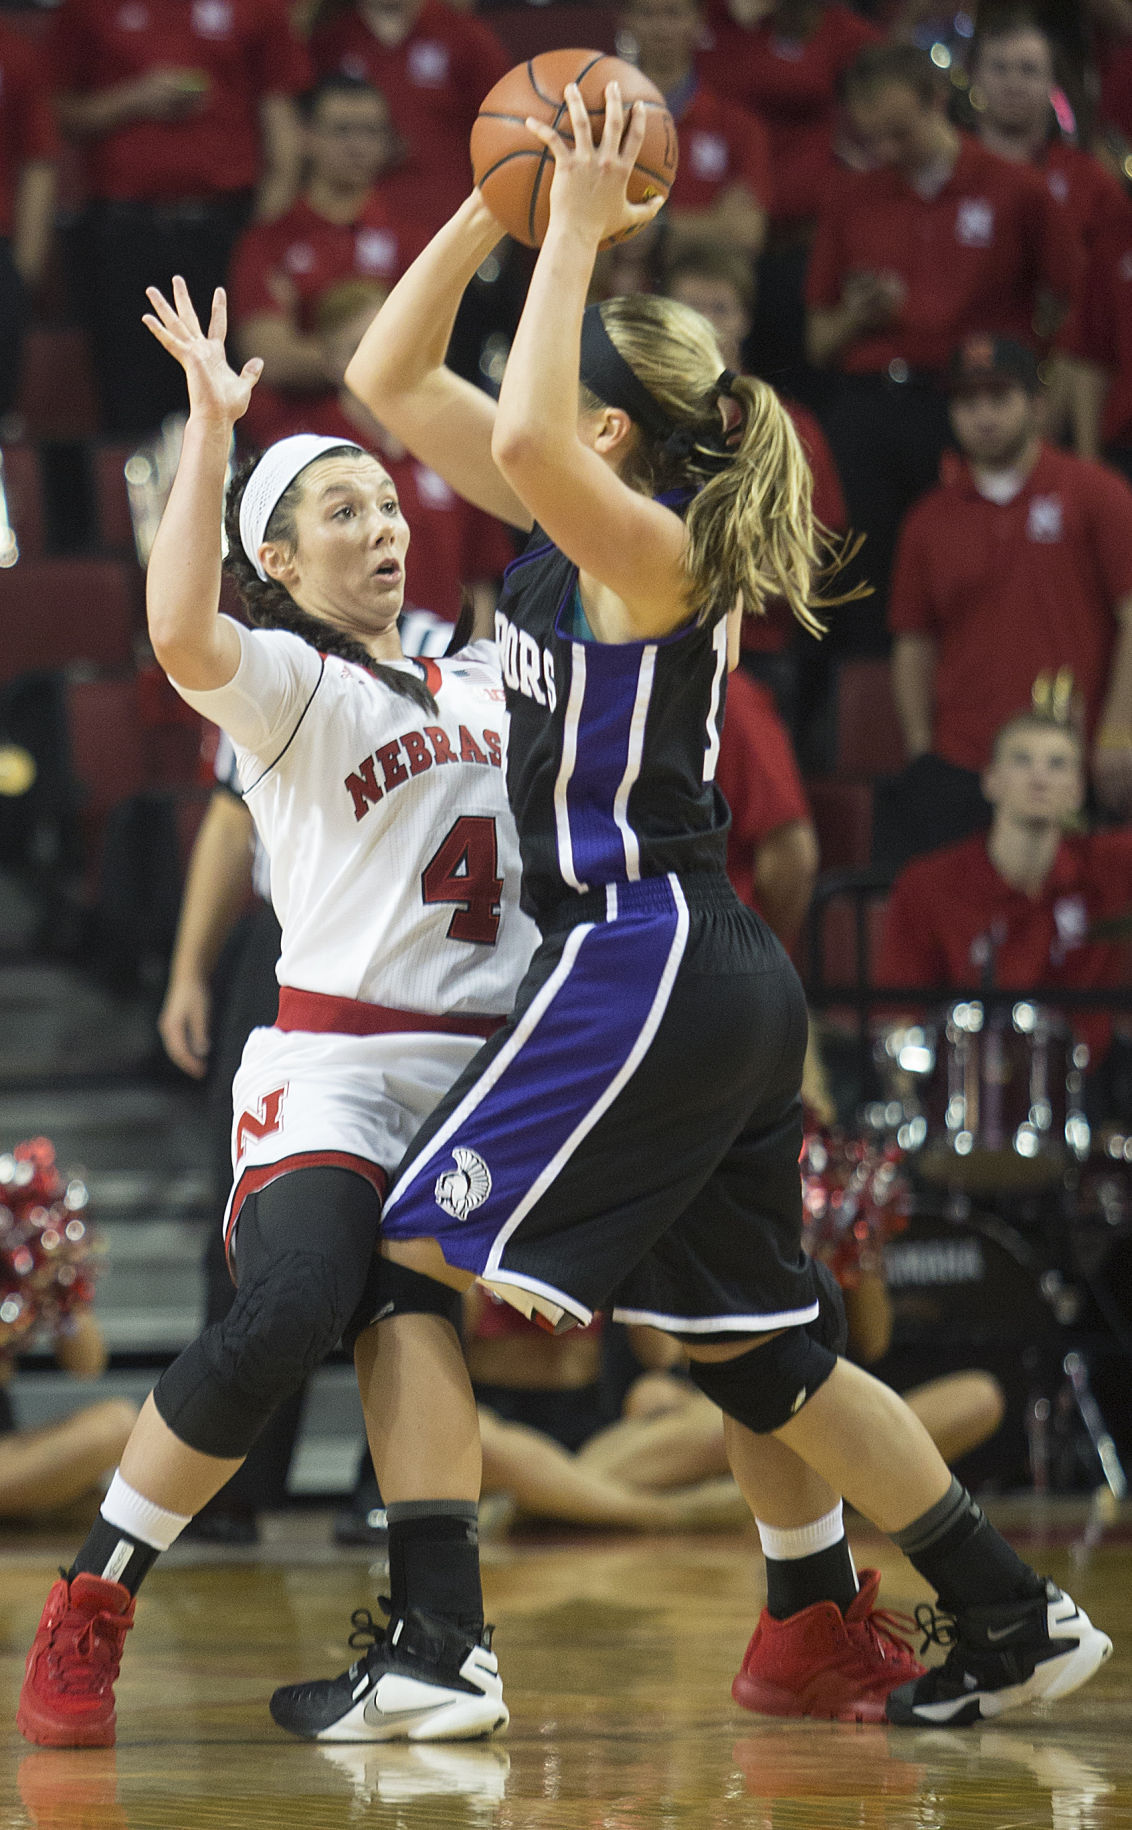 Women's basketball, Winona State vs. Nebraska, 11.08.15